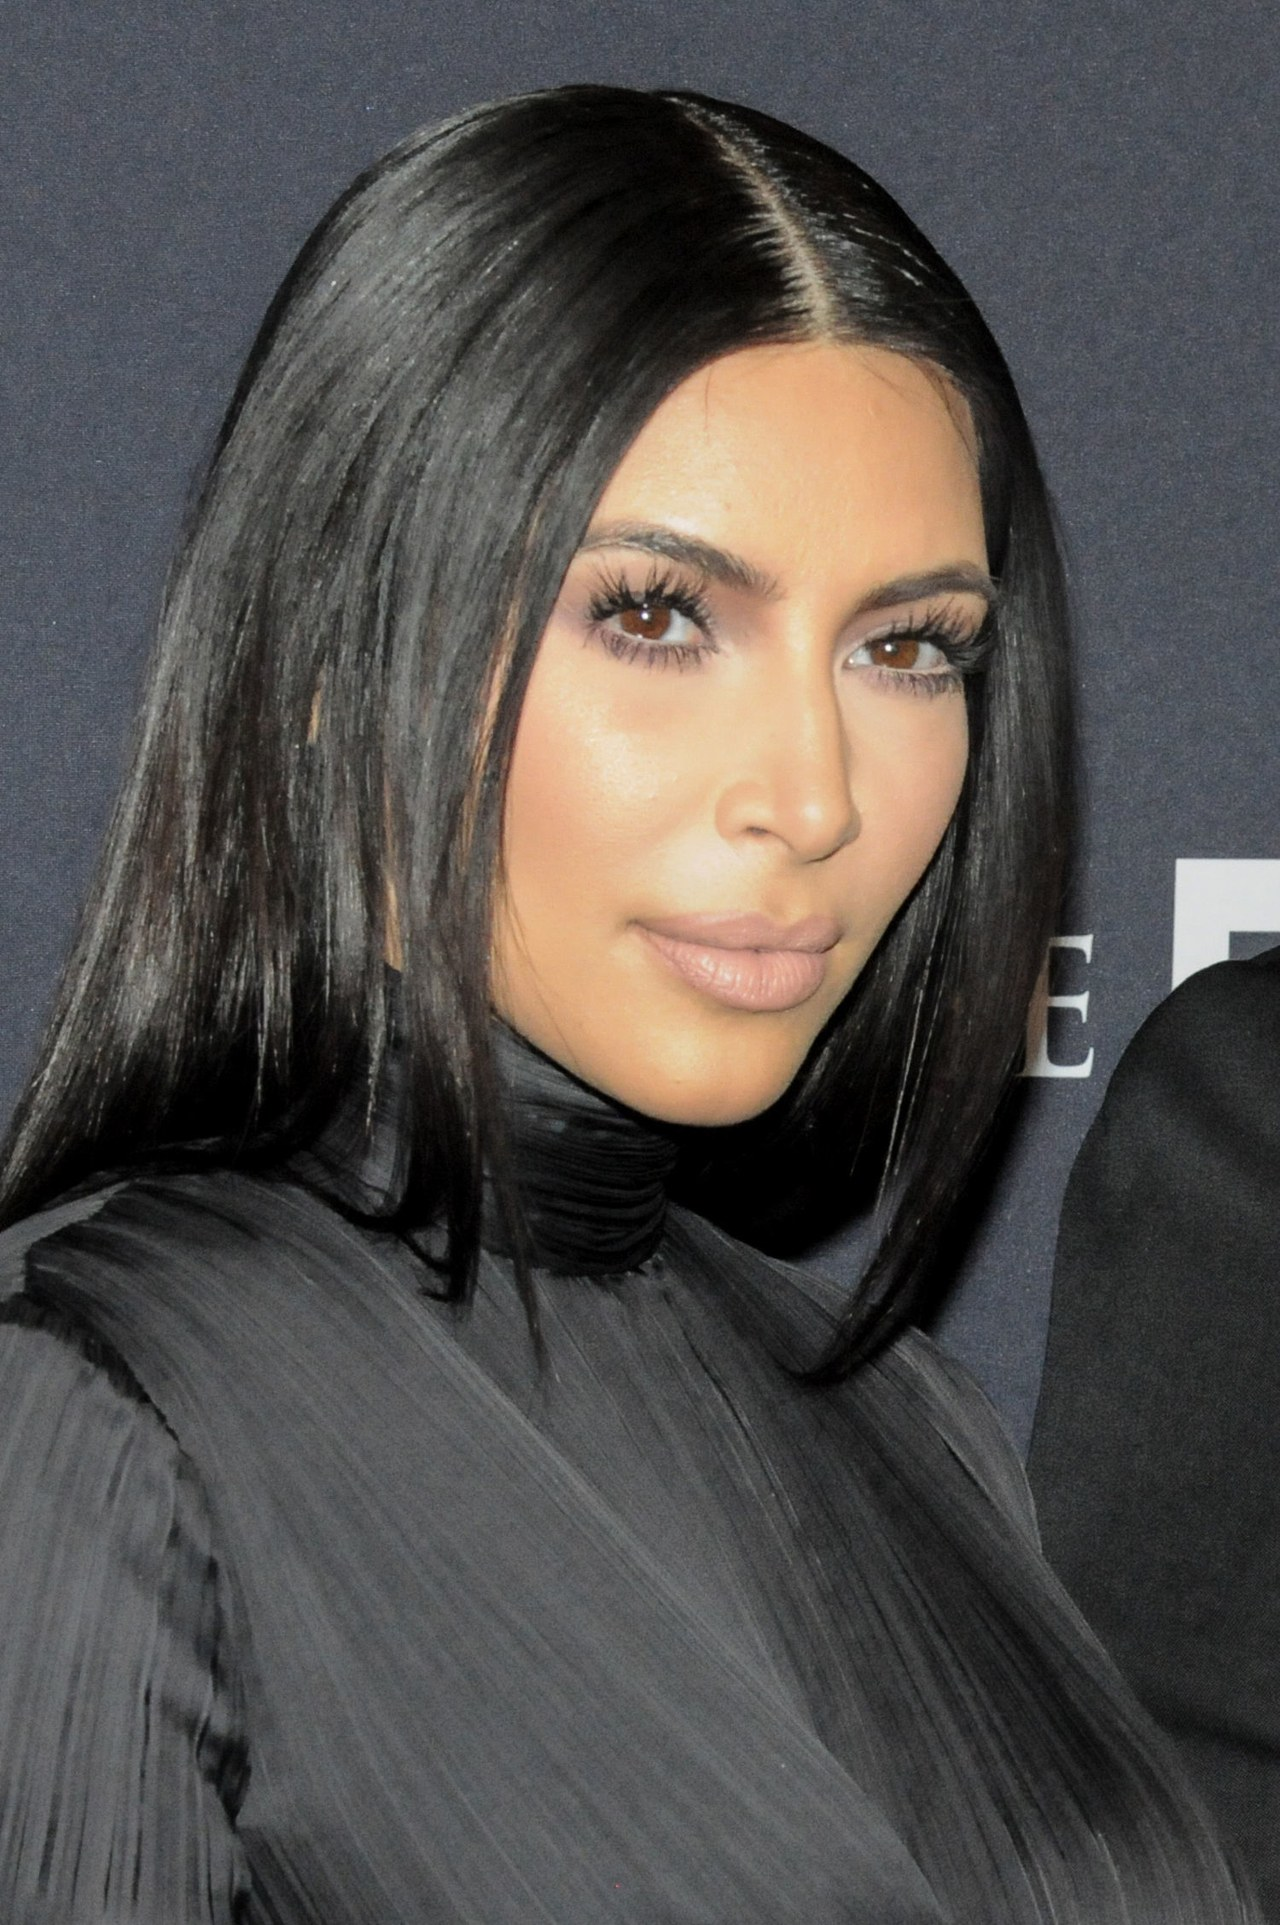 beauty-2015-01-kim-kardashian-shiny-hair-product-main